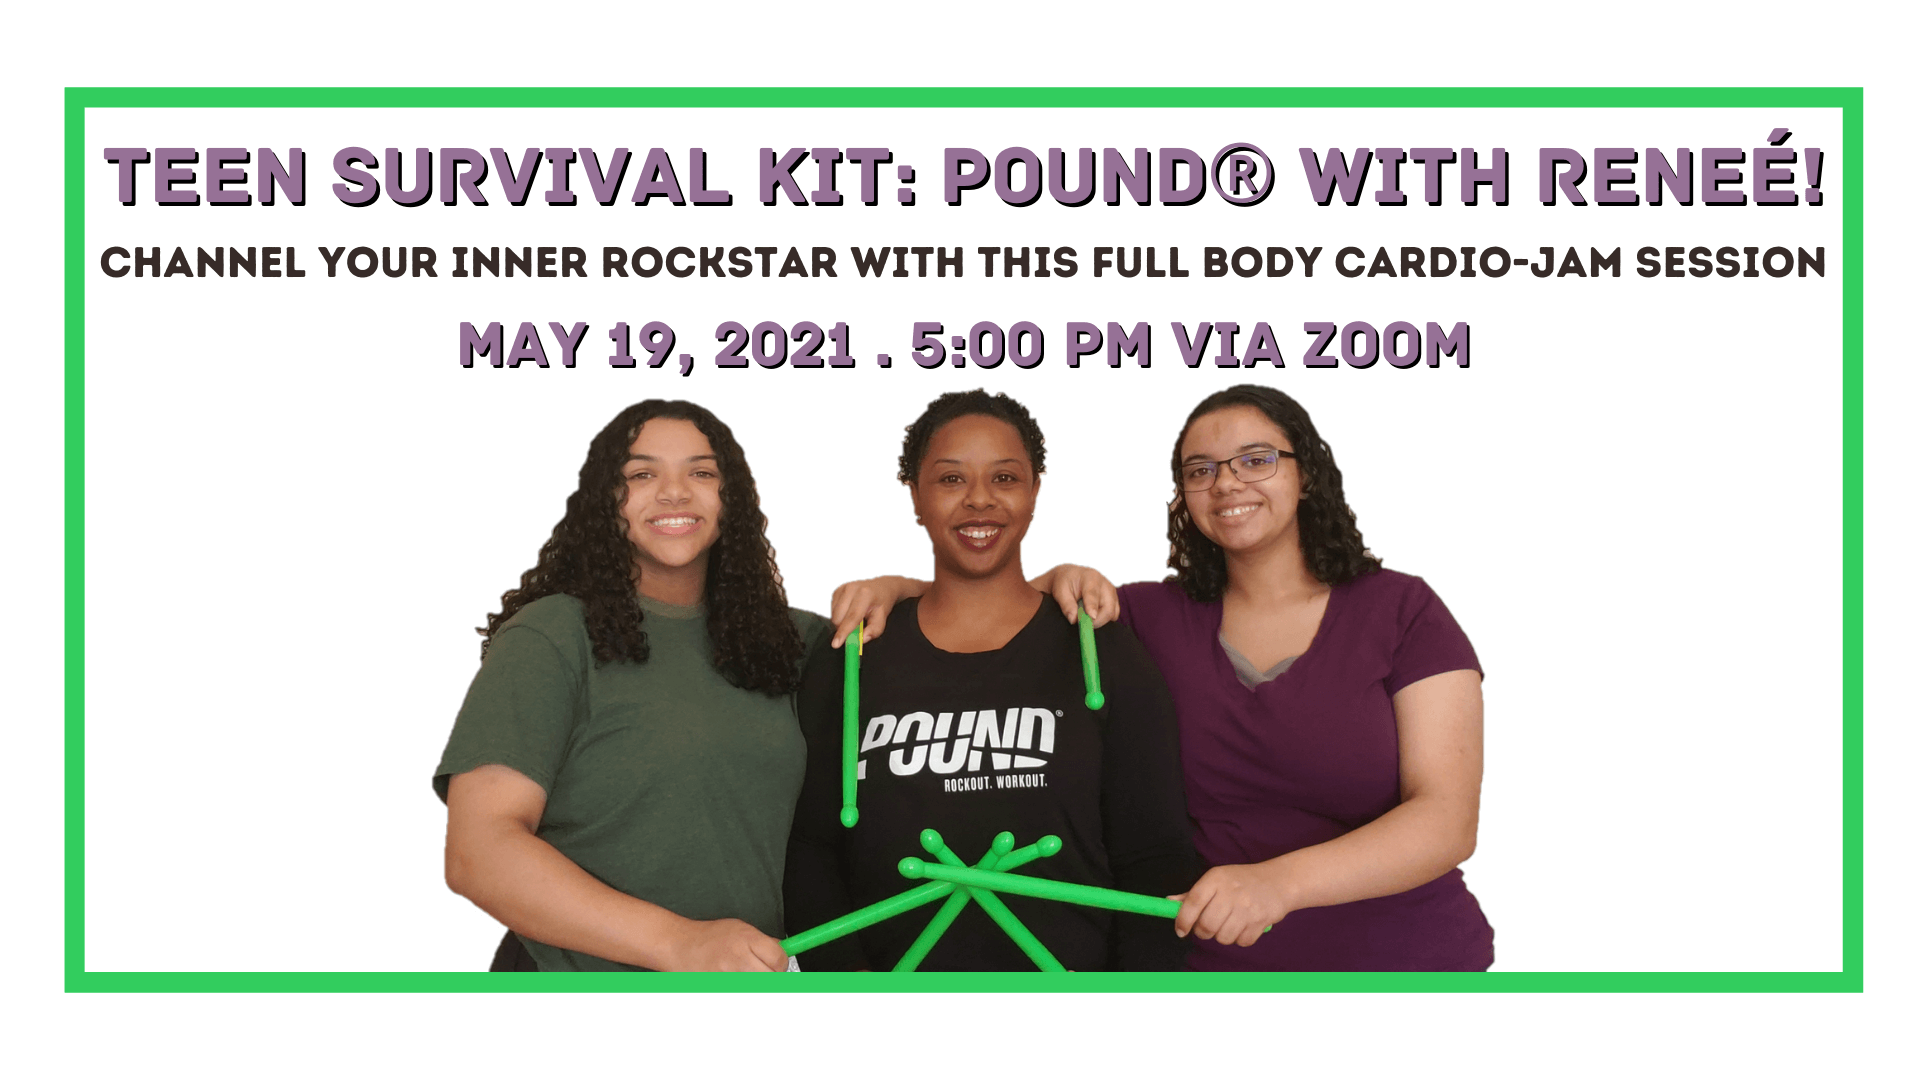 Teen Survival Kit: POUND With Renee!